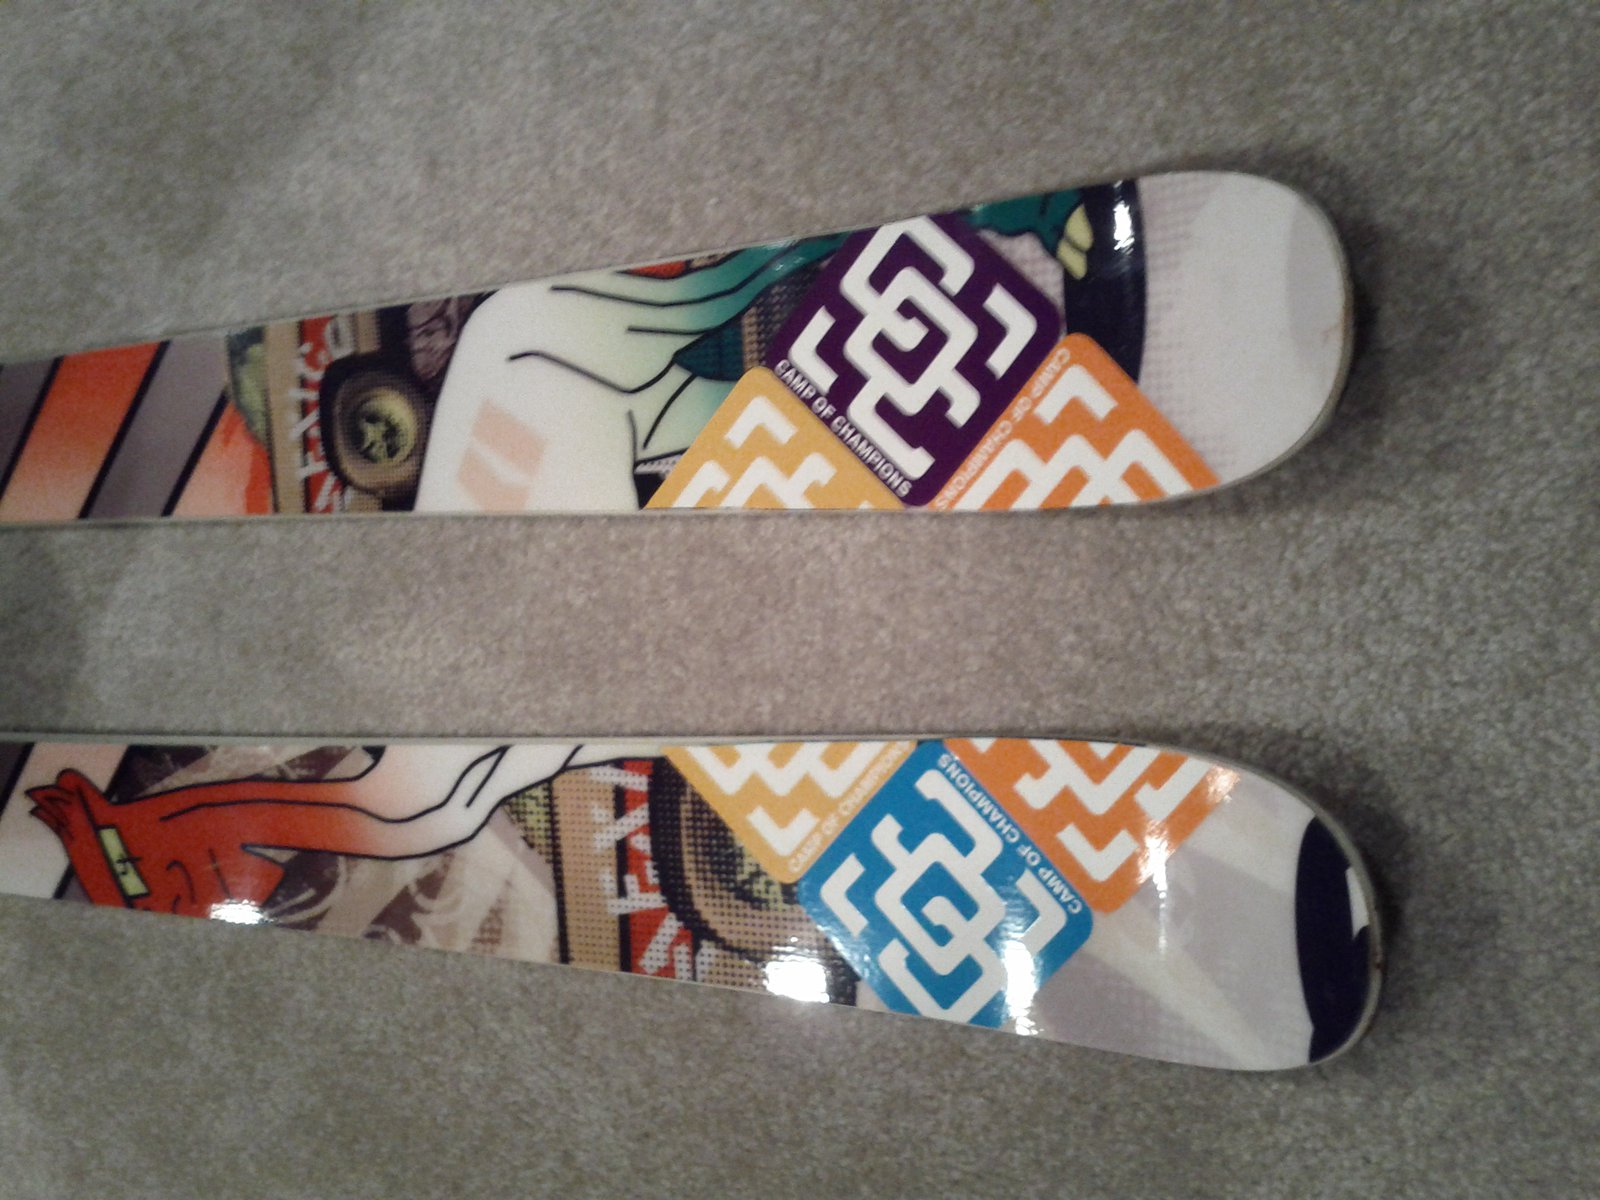 stickers on my skis